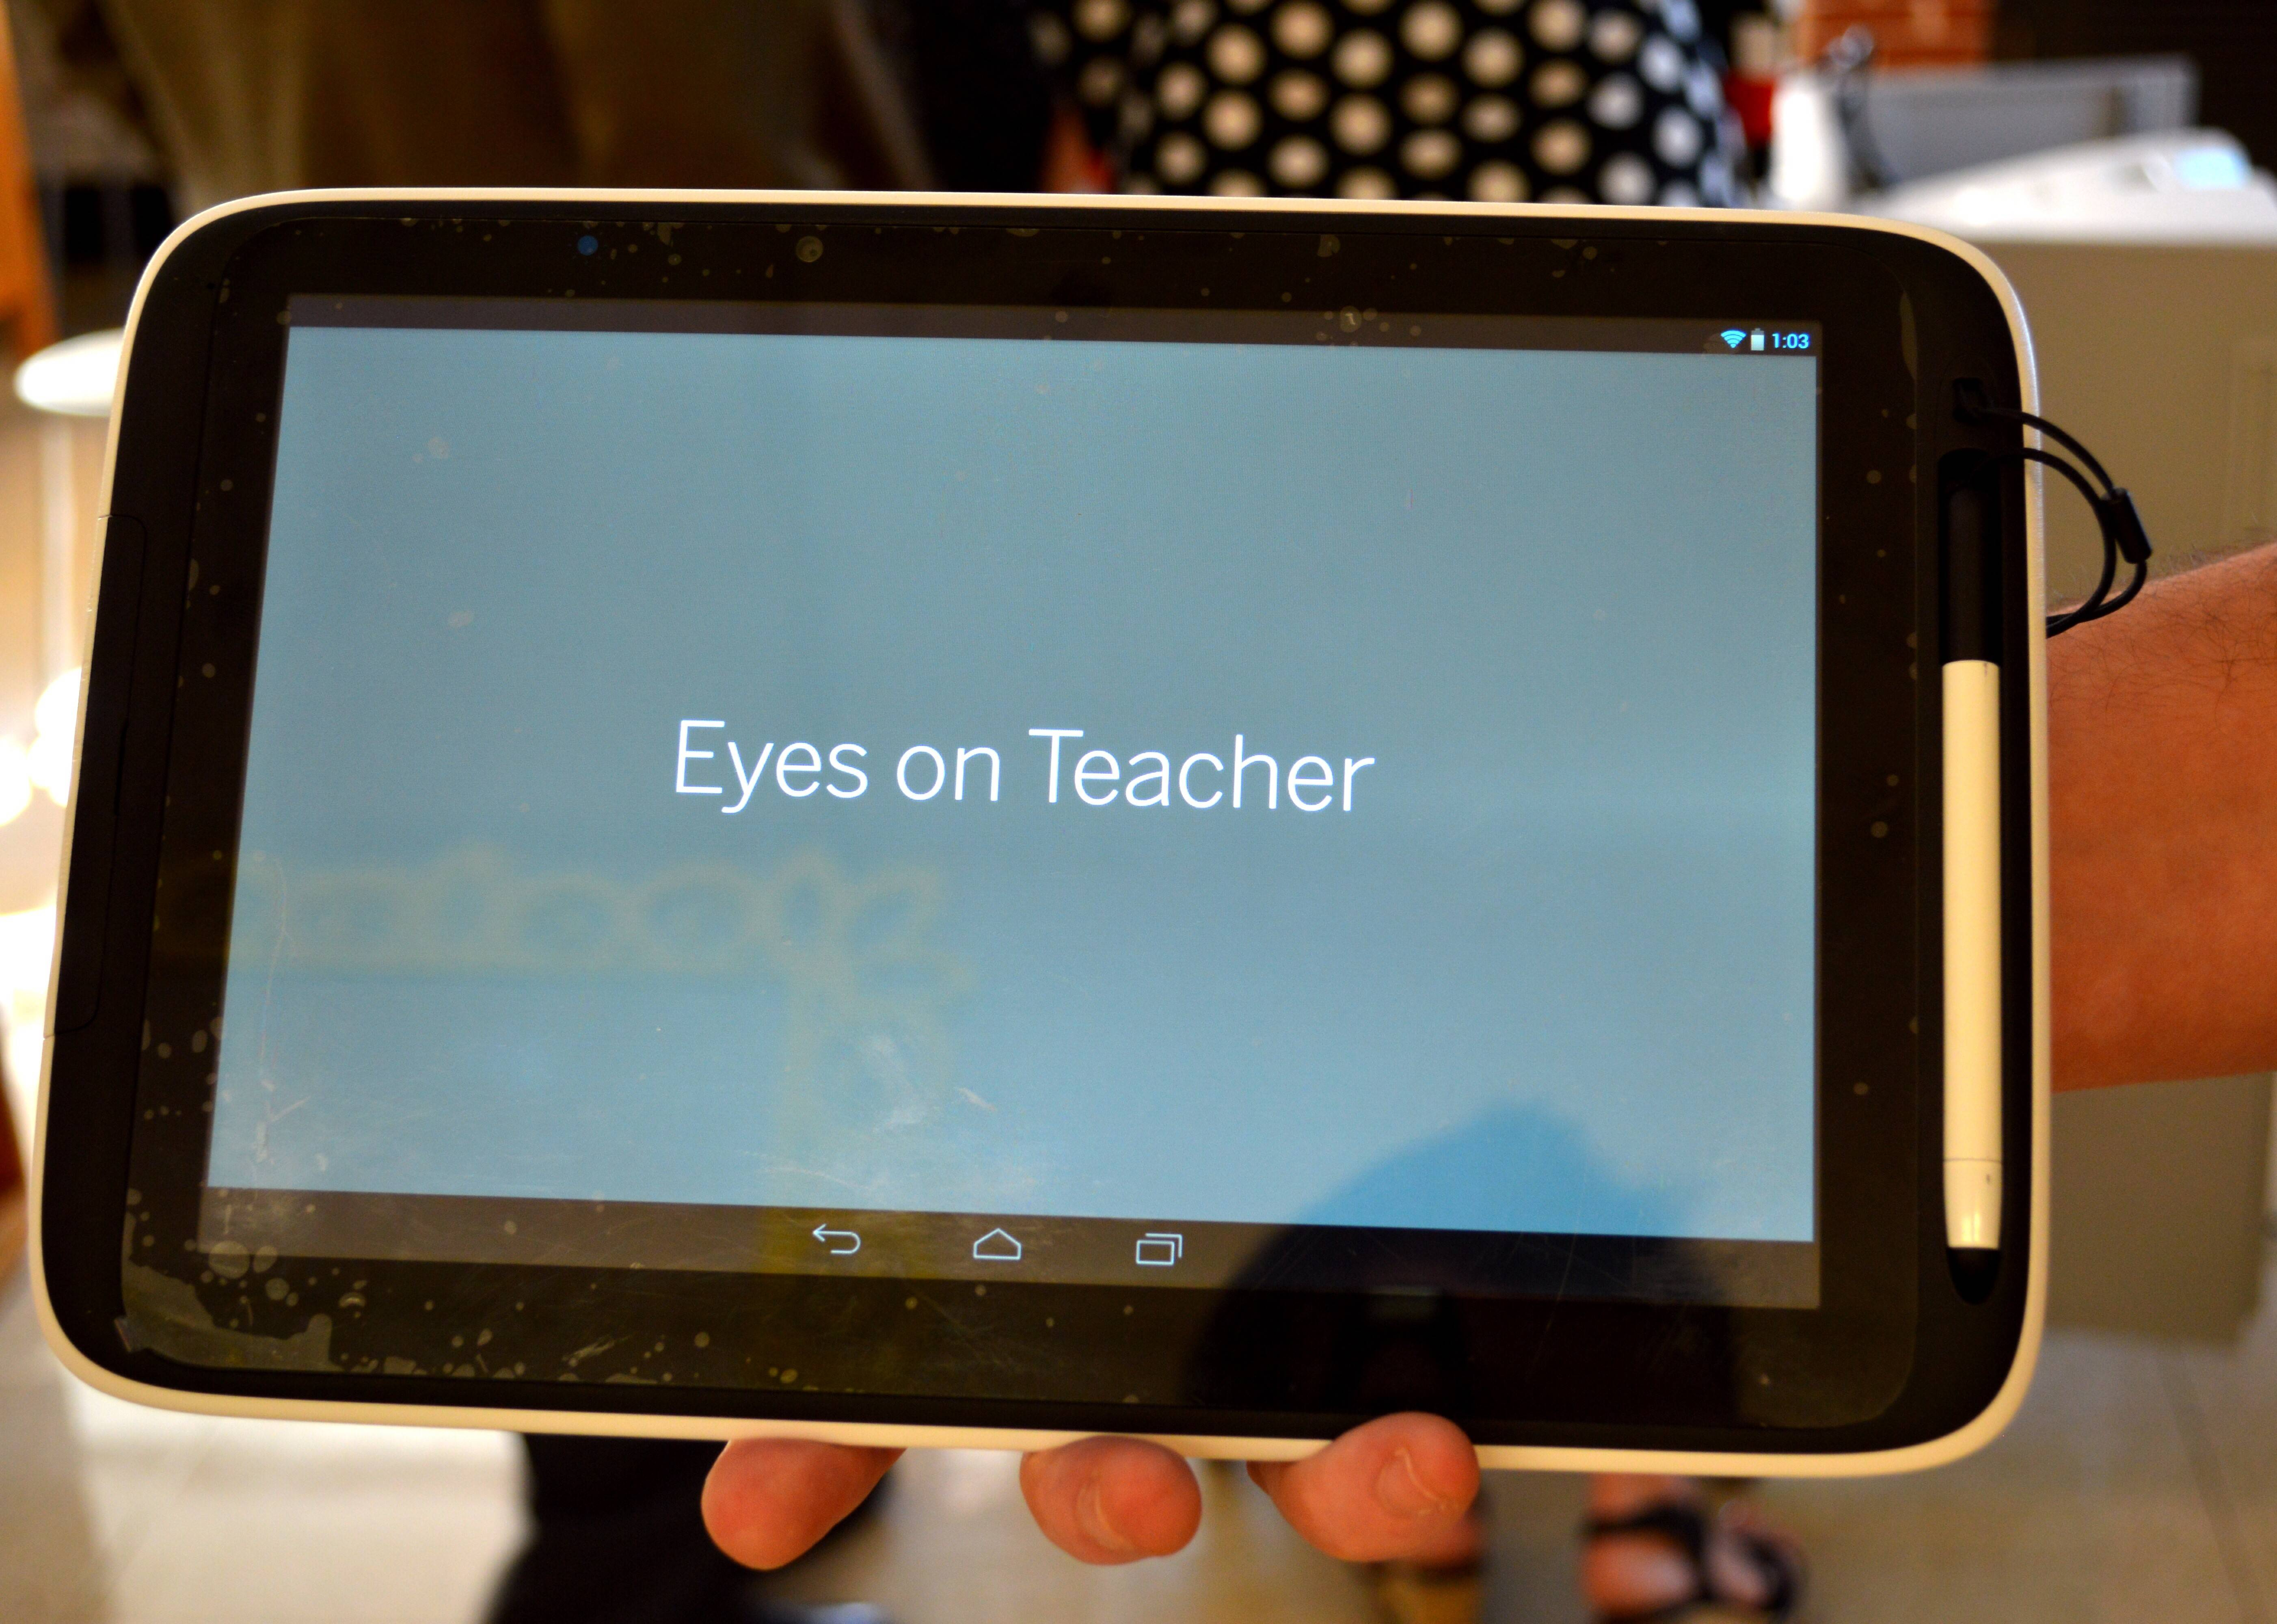 New Amplify Tablets being introduced at St. Charles' Richmond Intermediate school have a function that lets teachers both constantly monitor how students are using the device and allows instructors to remind  students to pay attention with the push of one button.